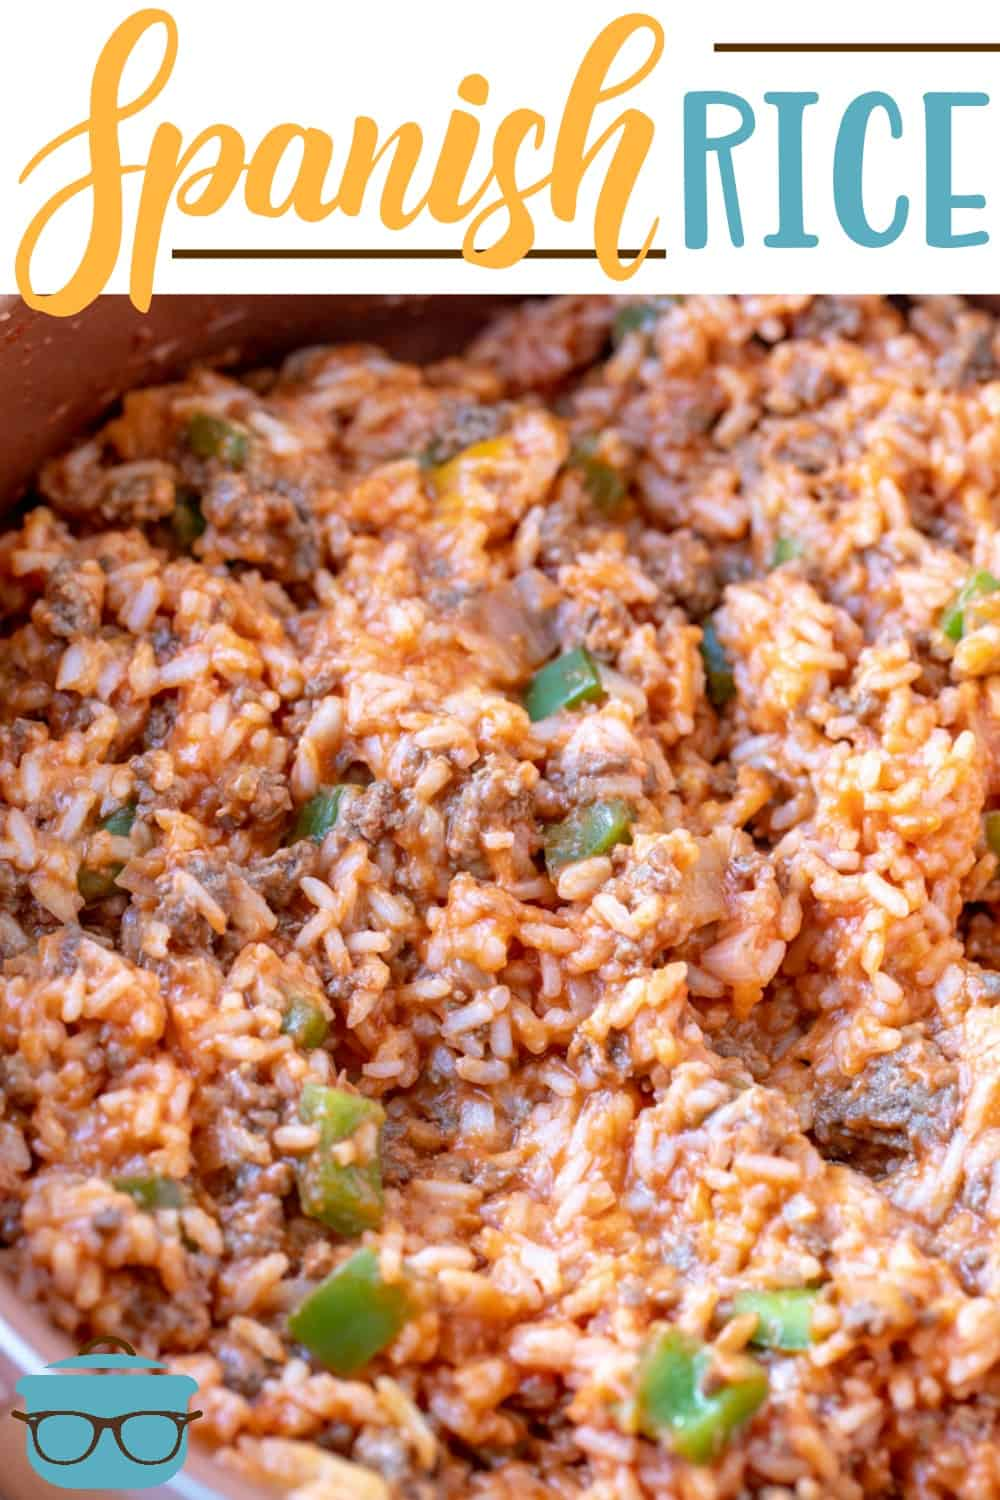 This Spanish Rice recipe is stuffed with cooked rice, tomato sauce, ground beef, peppers, onions and seasoning. Delicious comfort food! #spanishrice #groundbeef